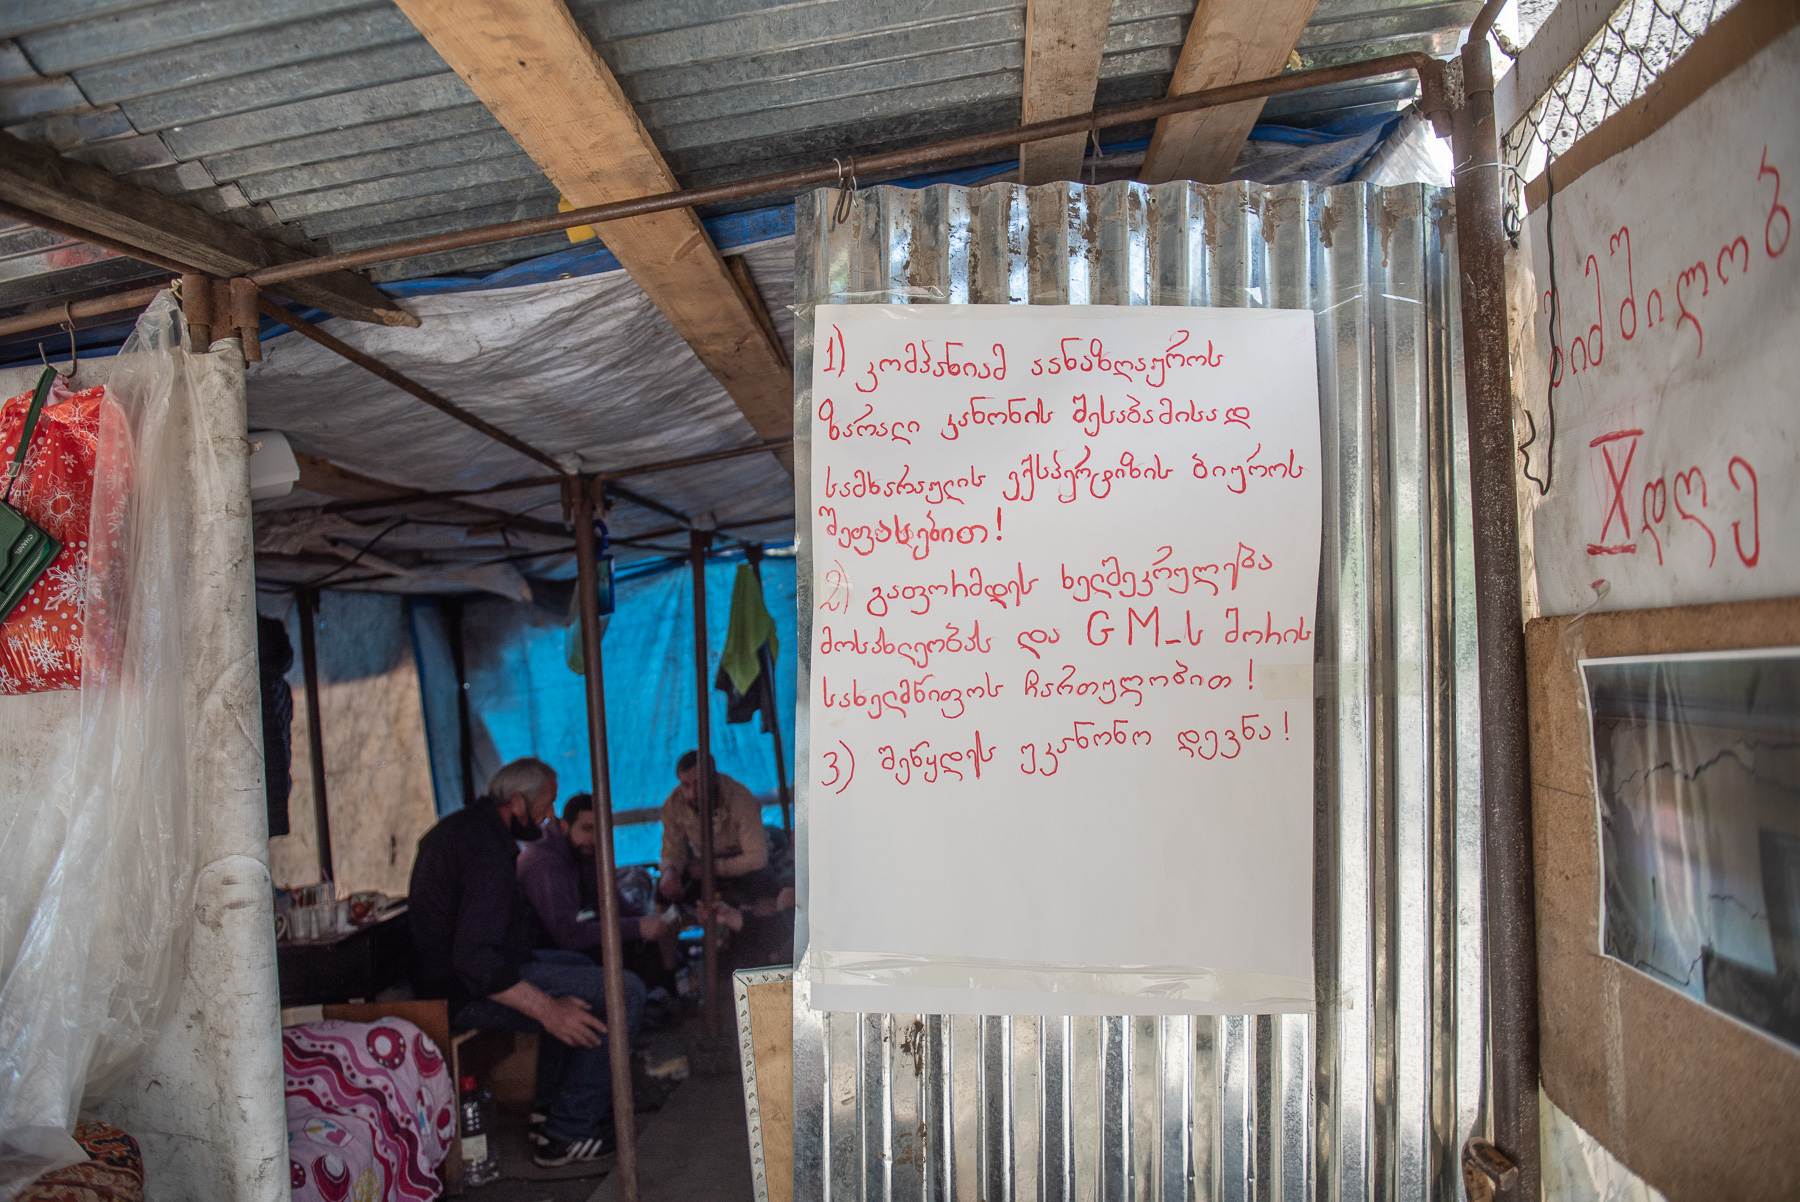 The protesters' demands posted at the entrance of the protest camp. Photo: Mariam Nikuradze/OC Media.